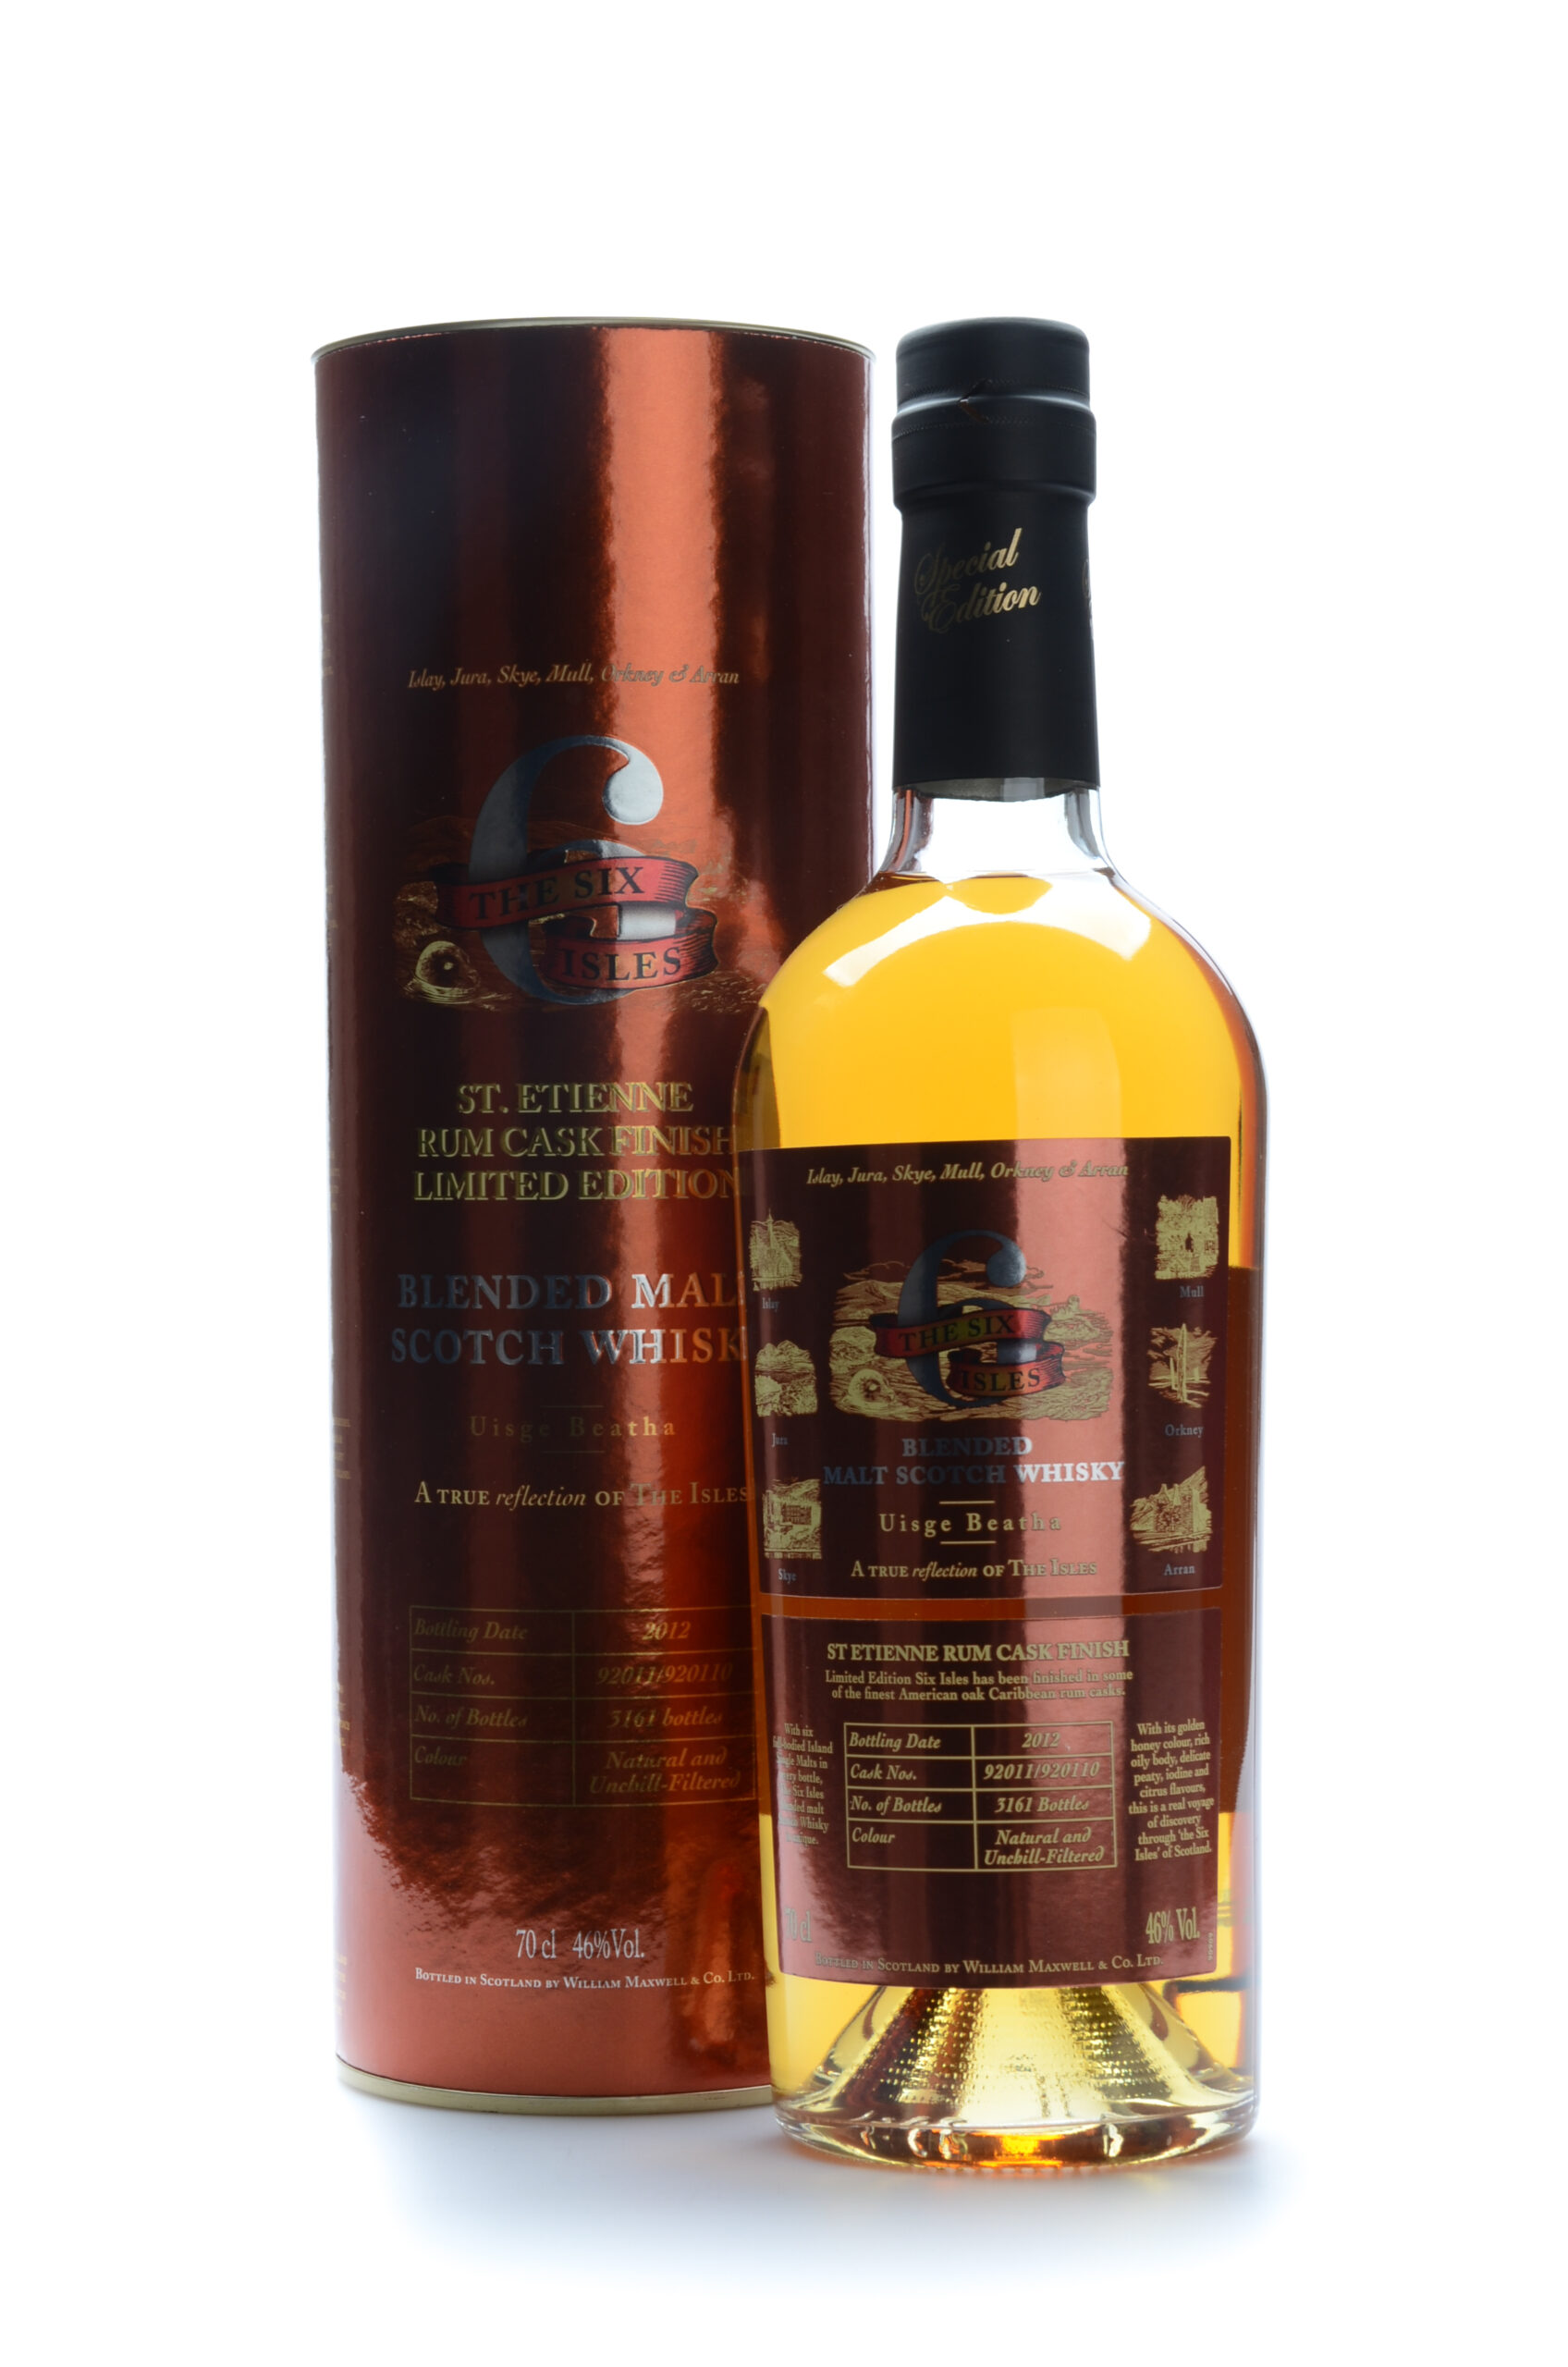 The Six Isles St.Etienne rum cask